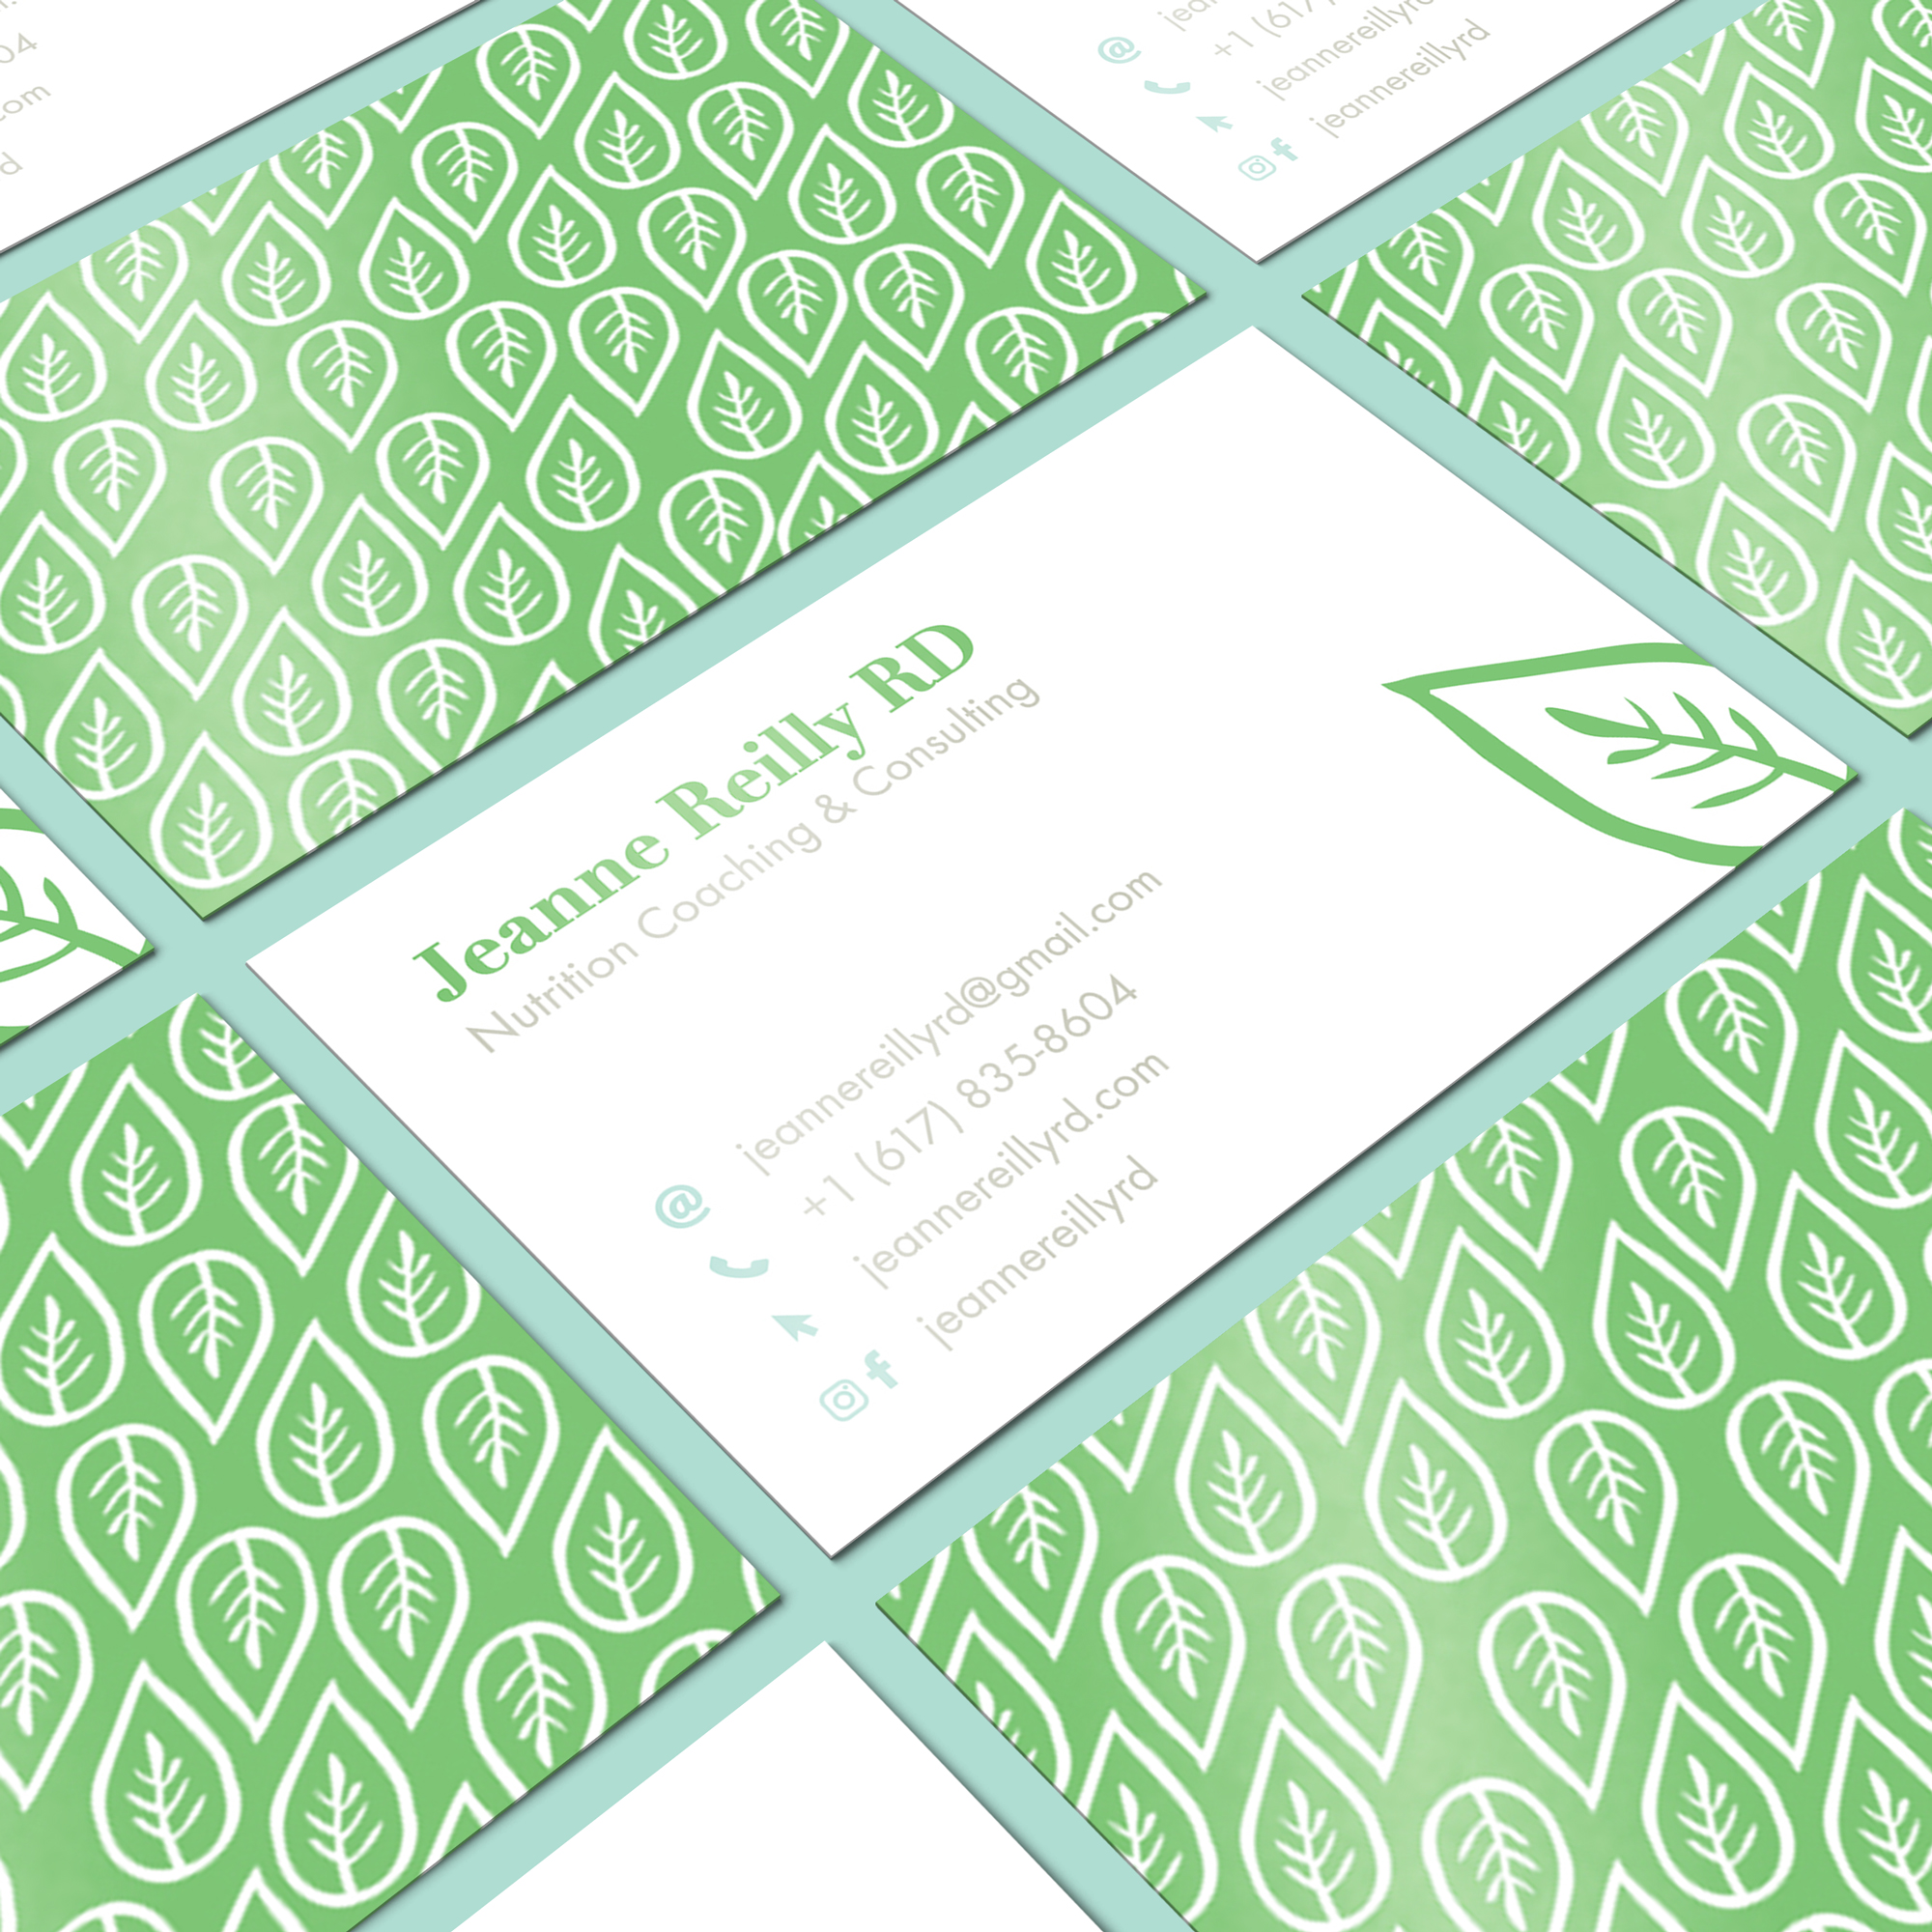 Jeanne Reilly Business Card design